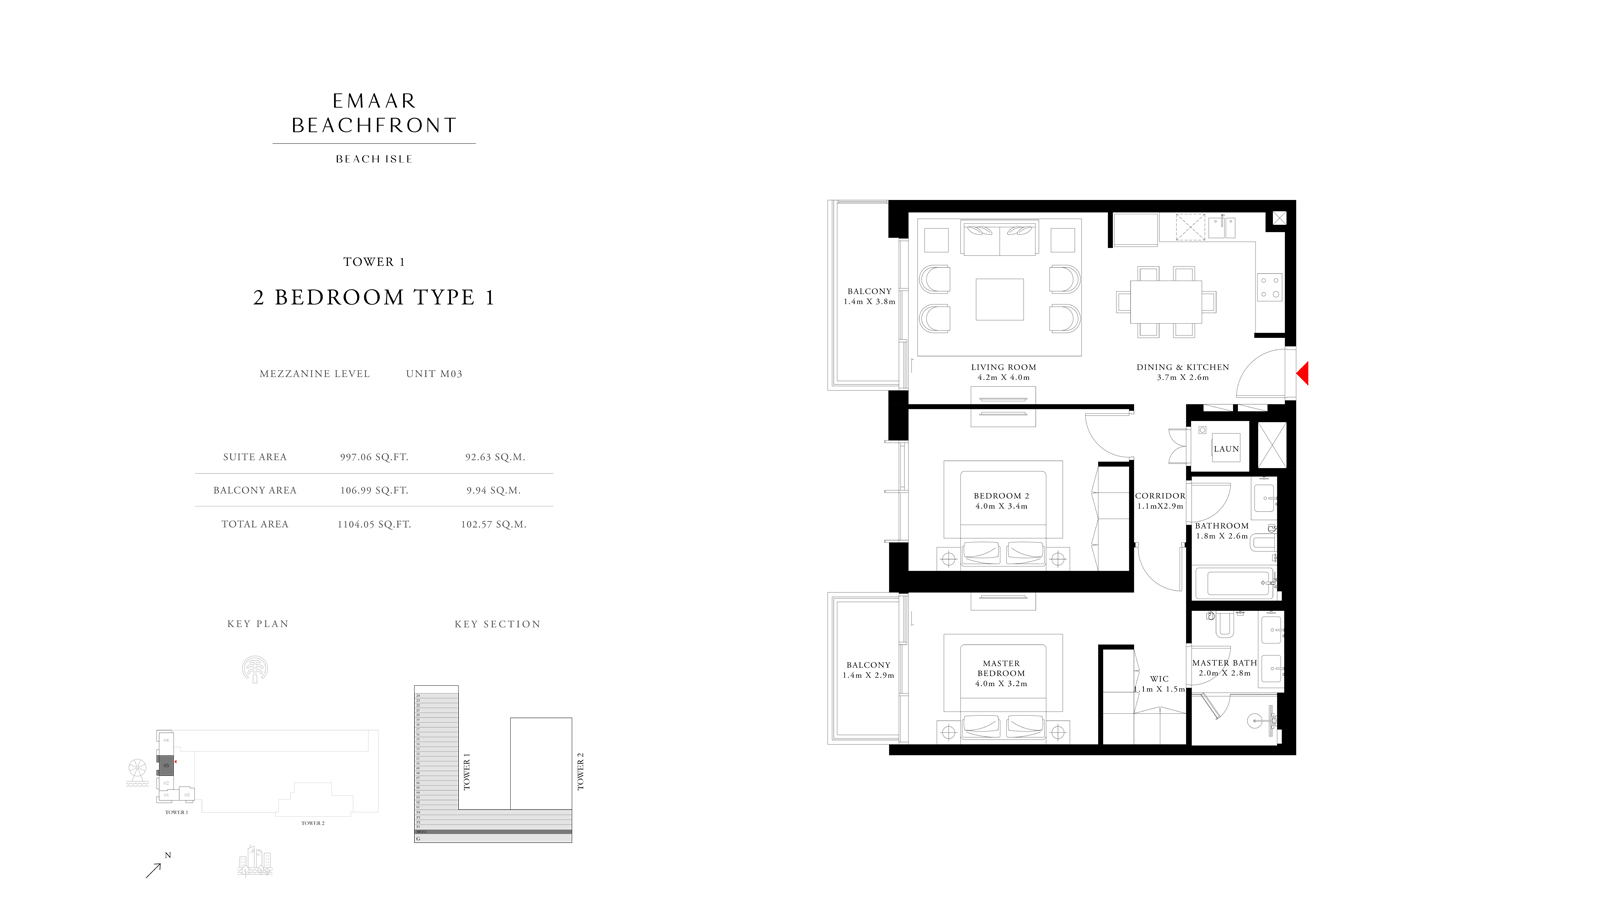 2 Bedroom Type 1 Tower 1, Size 1104 sq ft